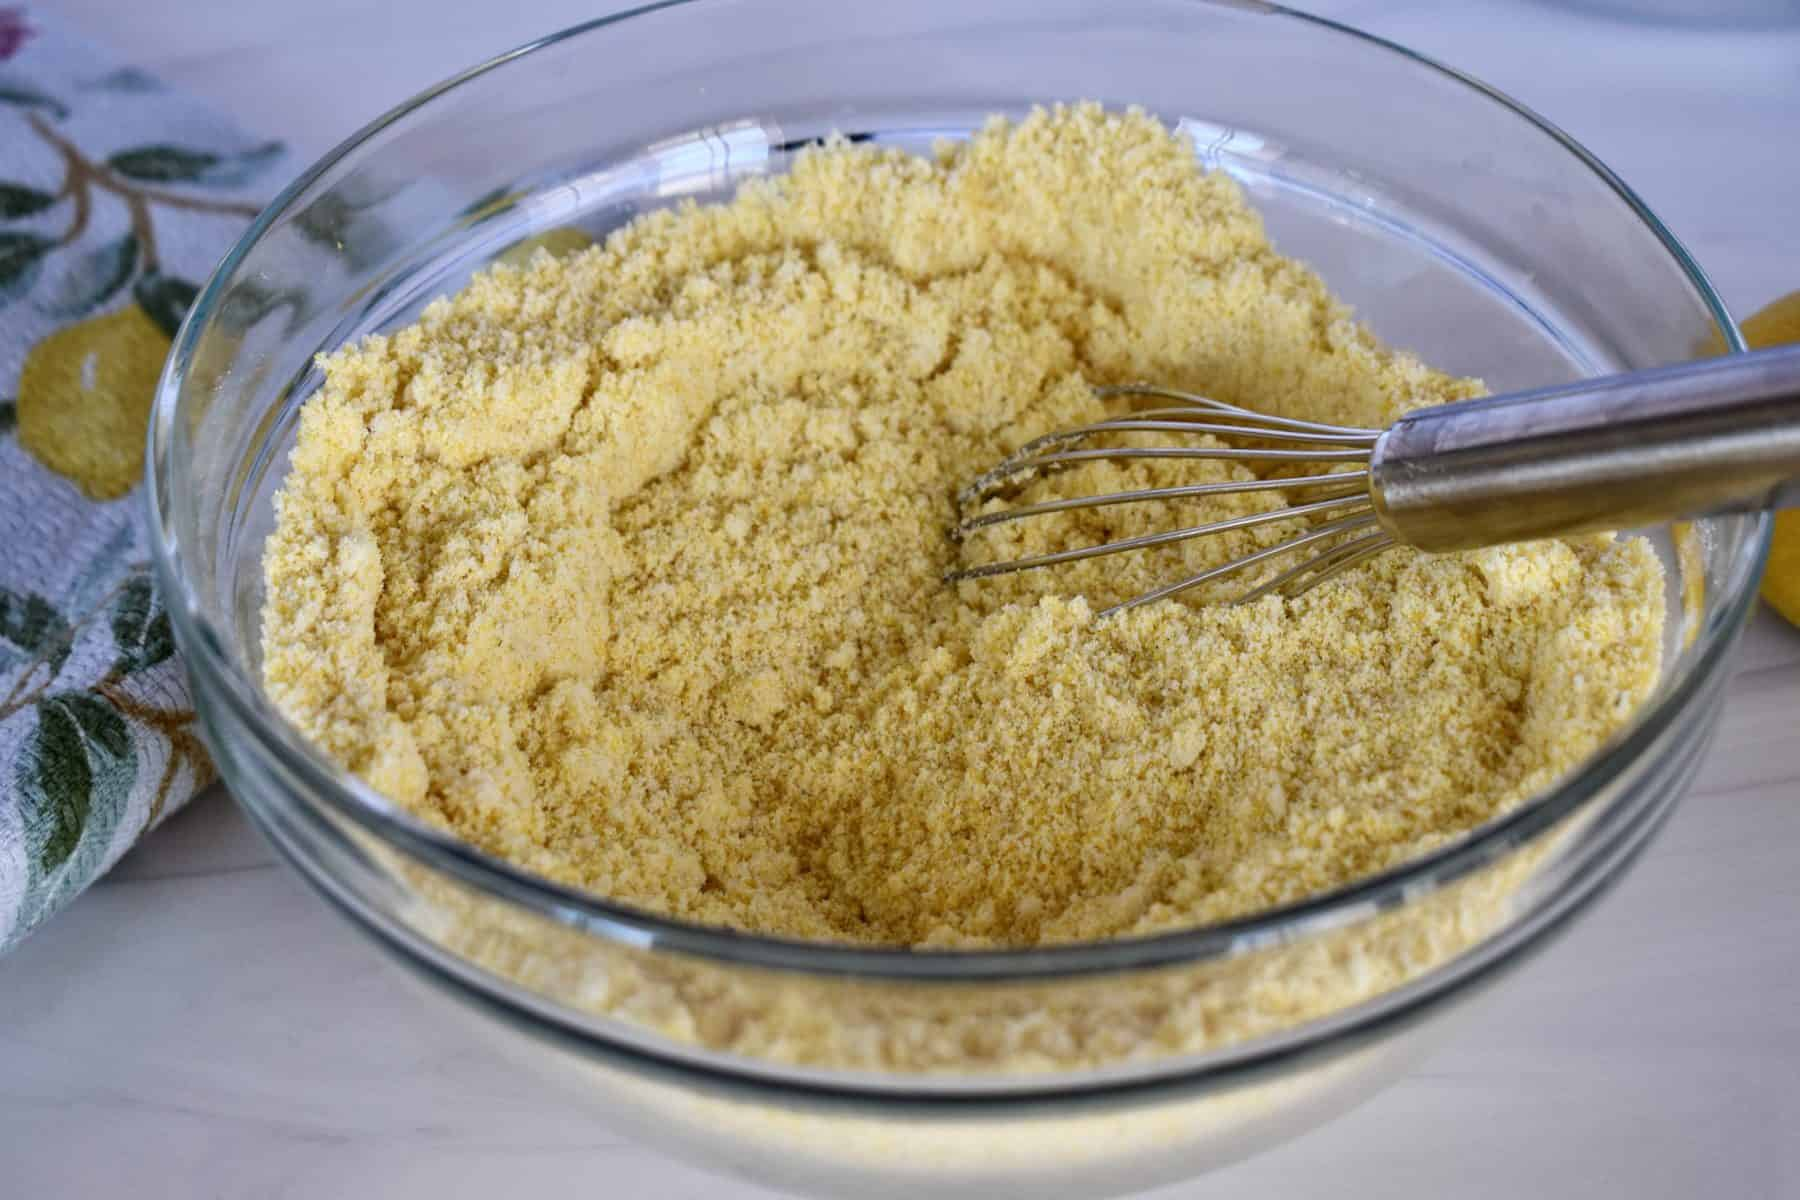 cornmeal and almond flour whisked together in a bowl.